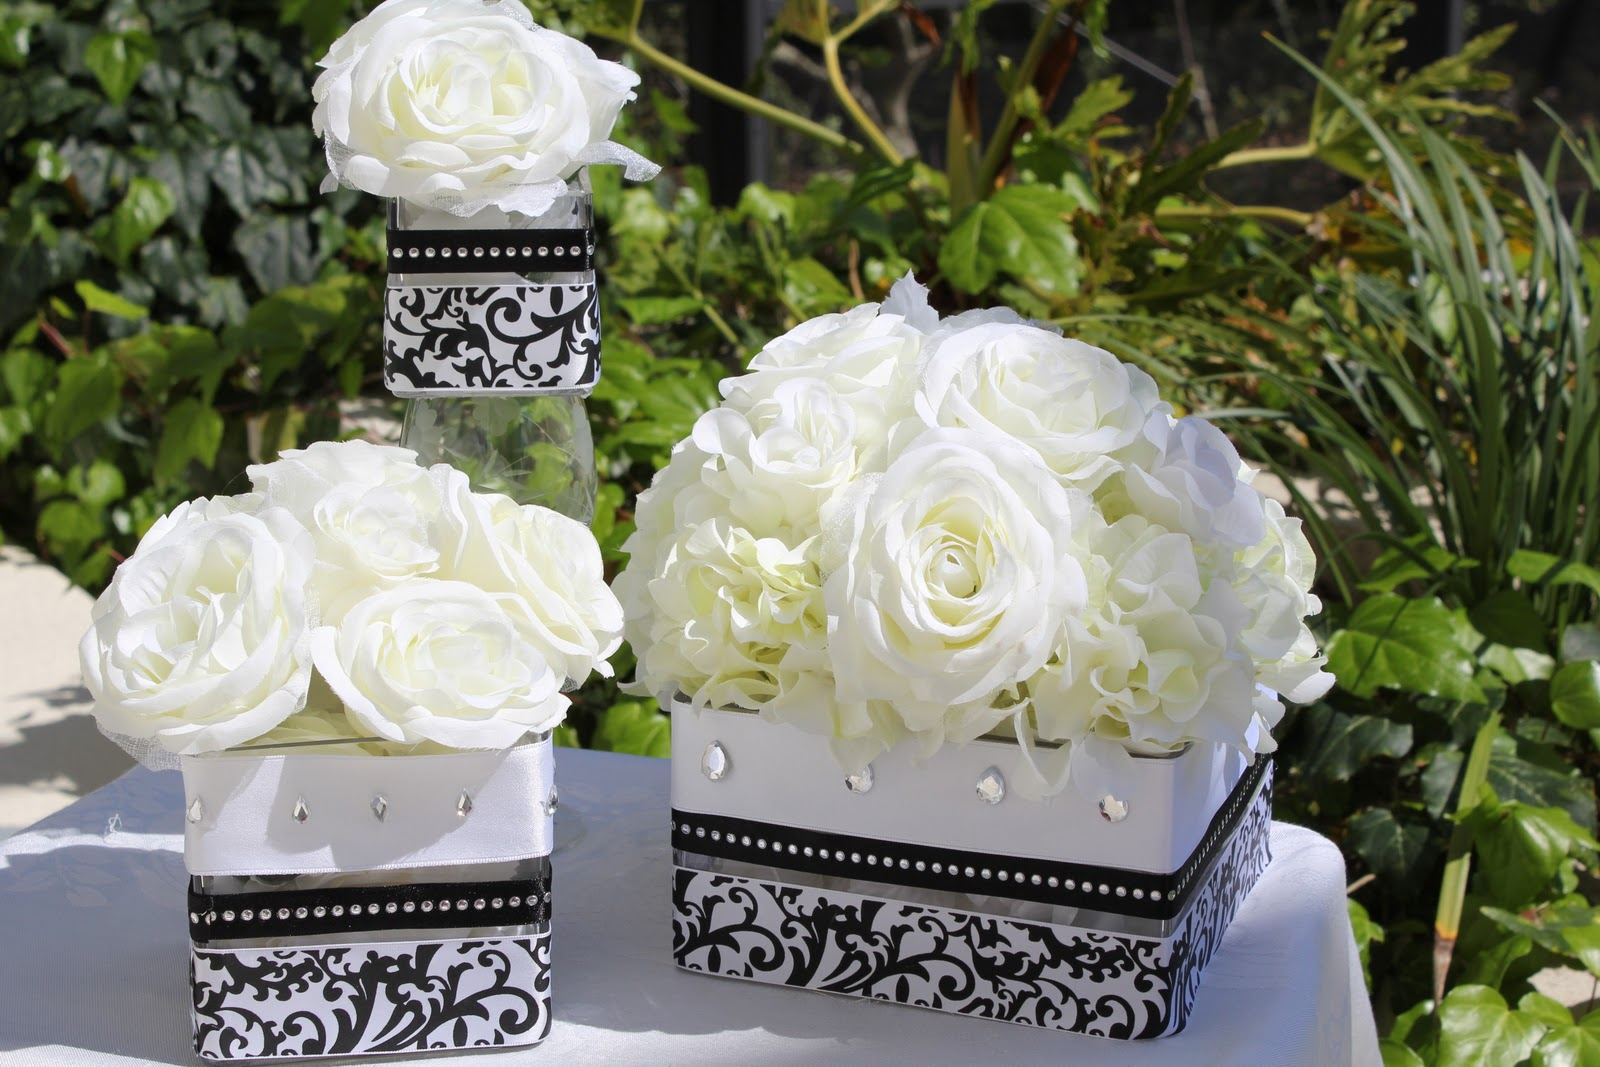 Vase Separated Wedding Cake Pictures 16